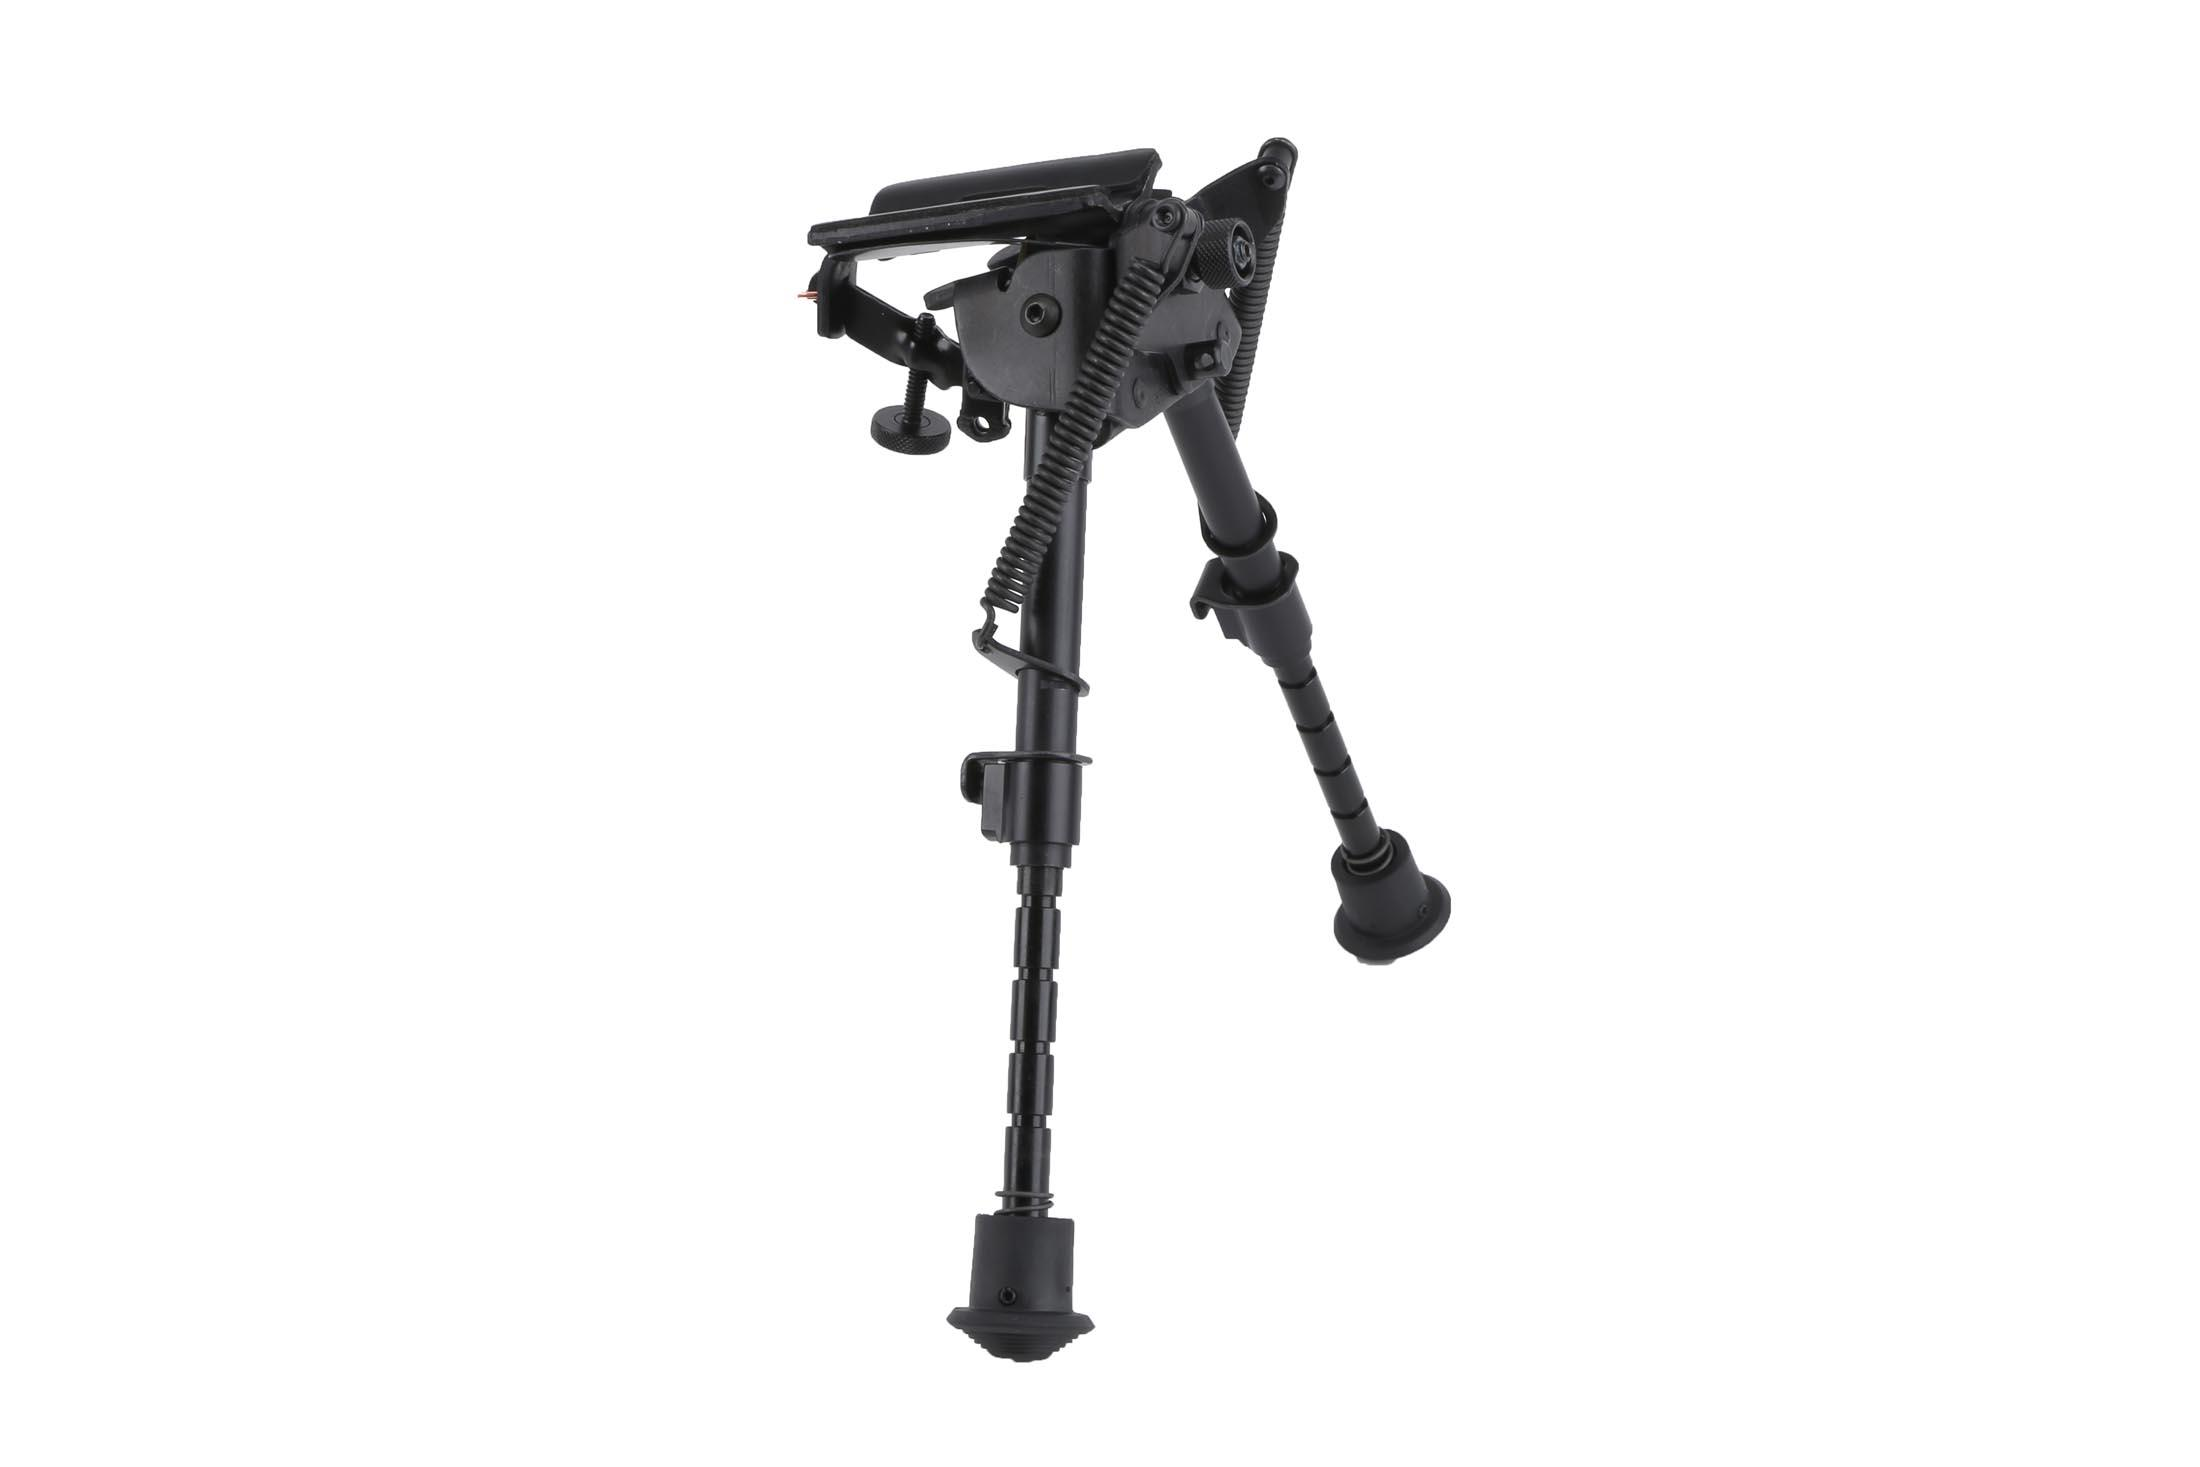 Harris Bipods have notched legs that can extend from 6 to 9 inches